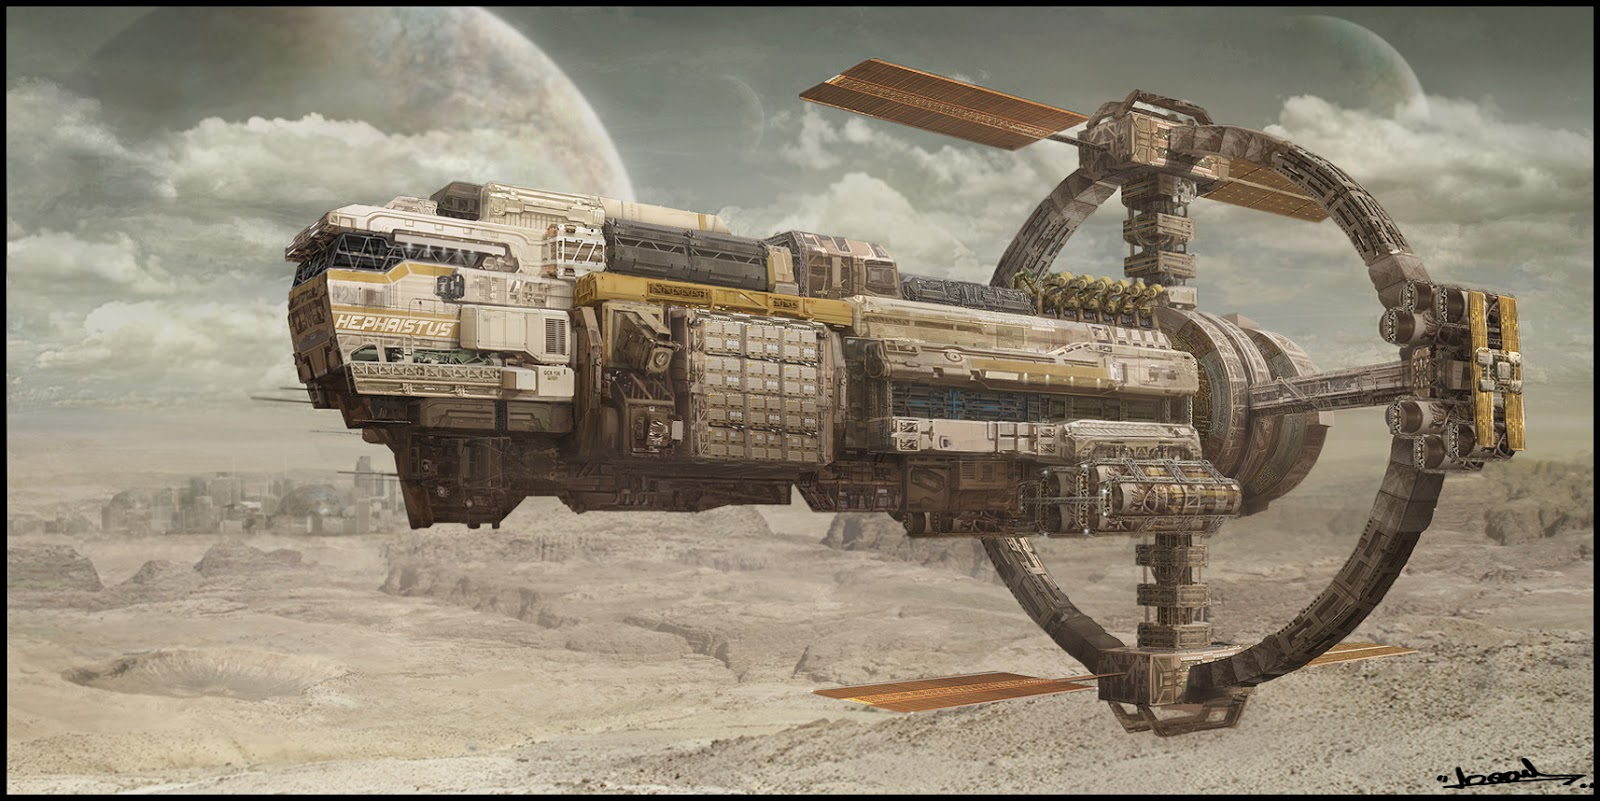 space freighter concept art